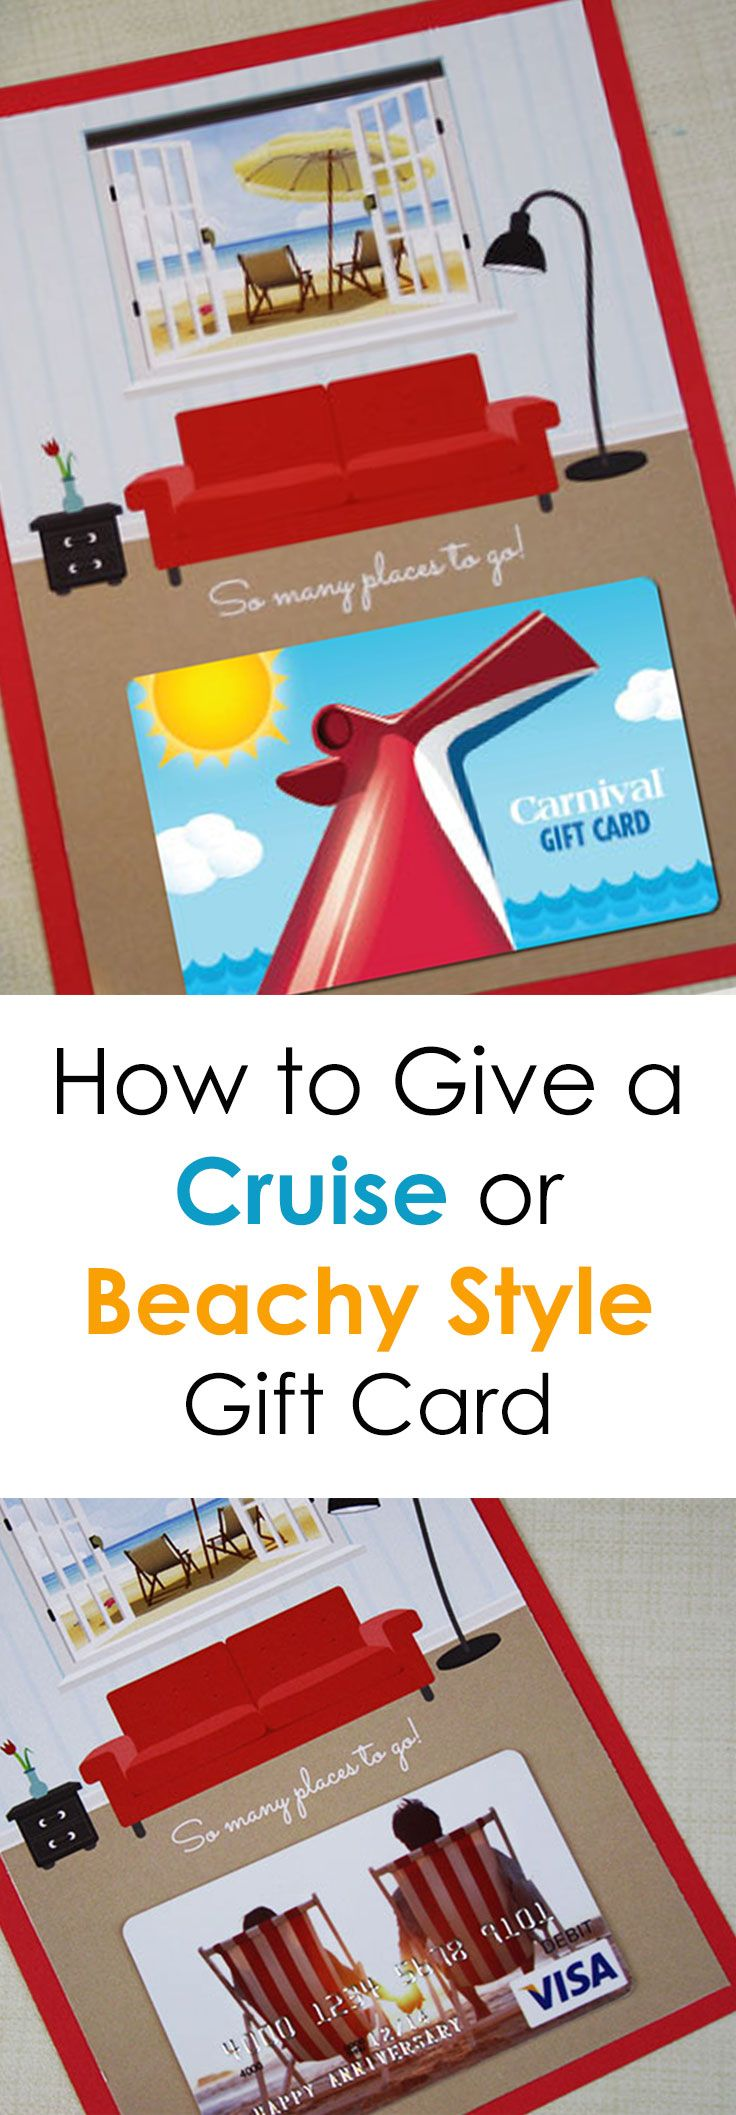 Check out this free printable gift card holder that is perfect for a cruise line gift card, a vacation gift card and any type of beach-themed getaway. In the post, you'll find several travel-themed gift cards plus ways to save on some of your favorite cruise or beach themed gifts.